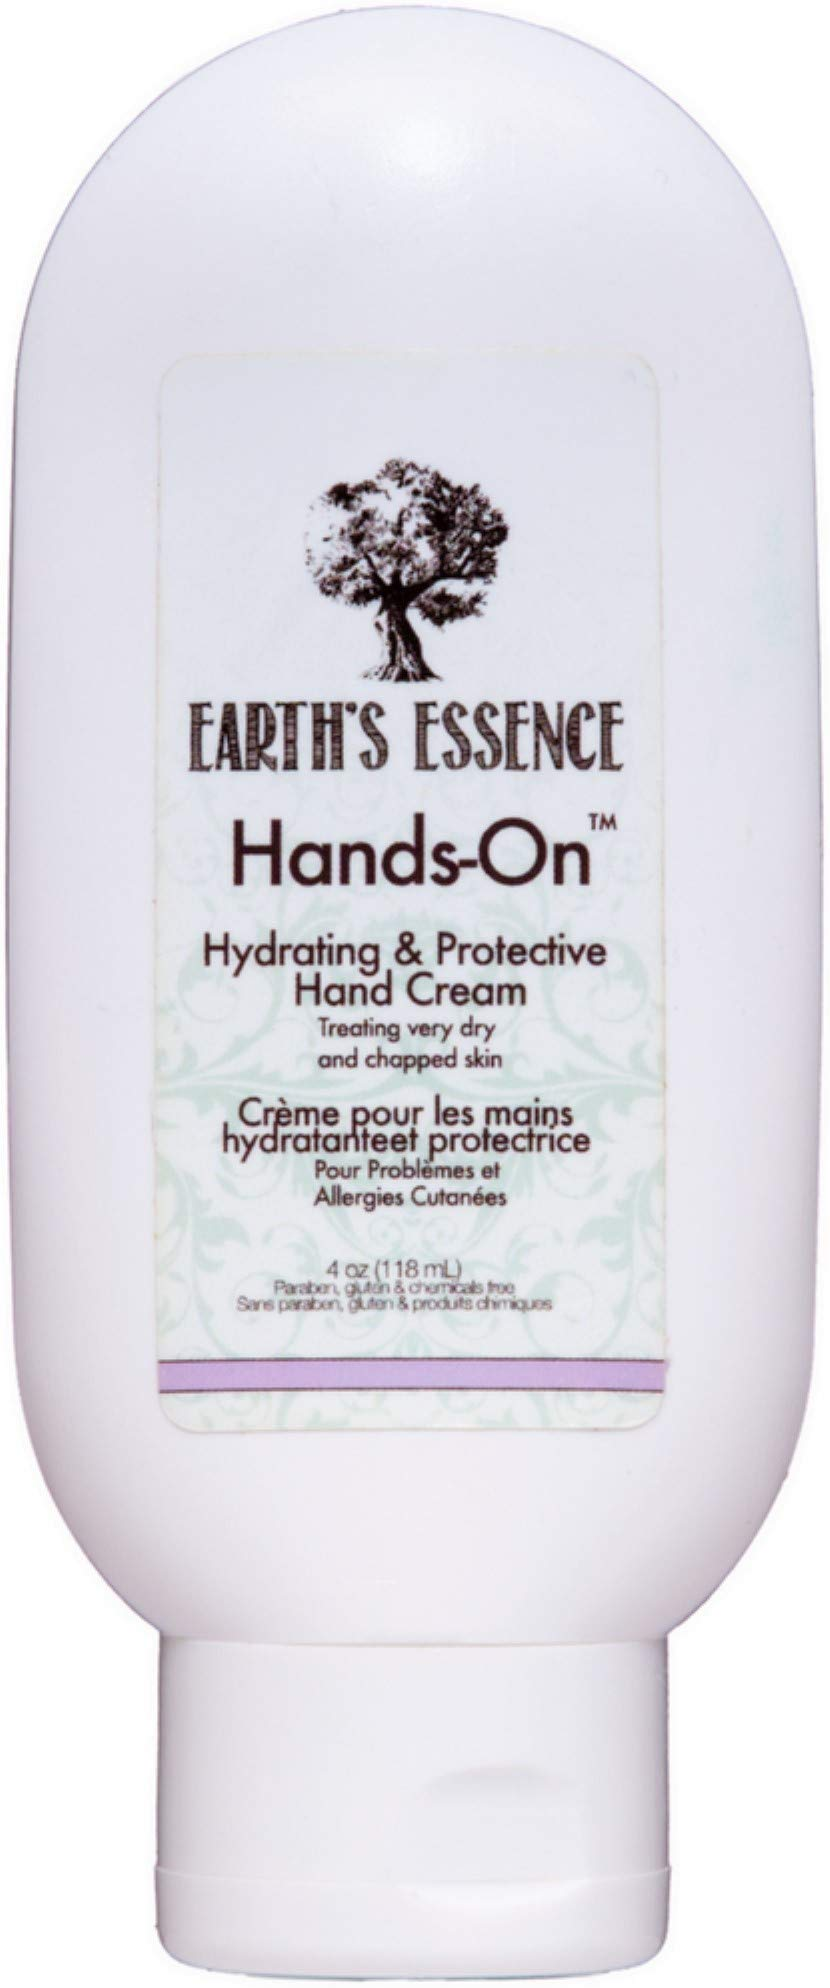 Earth's Essence Organic Skin Care Hands-On Hand Cream, Quick-Absorbing, Designed to Hydrate, Treat, and Protect Dry Skin, 3.9 oz